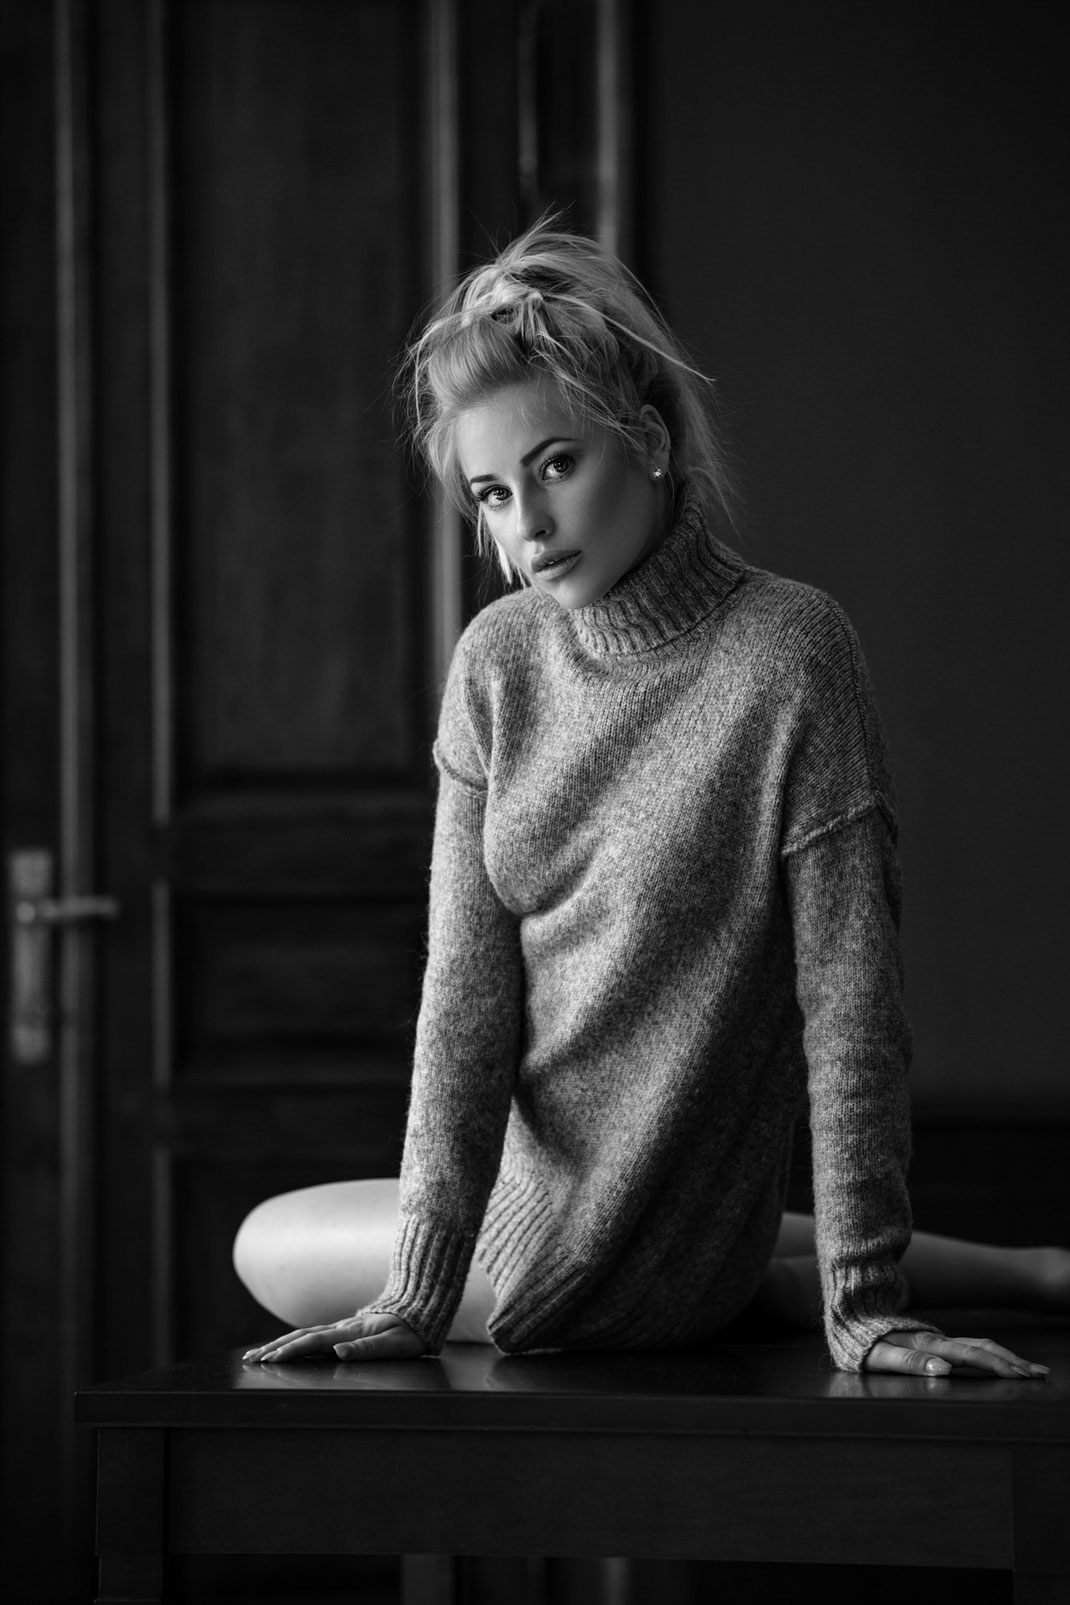 Portrait - Markus Hertzsch - B&W - Girl - Model - Bildlook - Face - Pose - Art - Hair - Eyes - Pullover - Blonde - Saskia